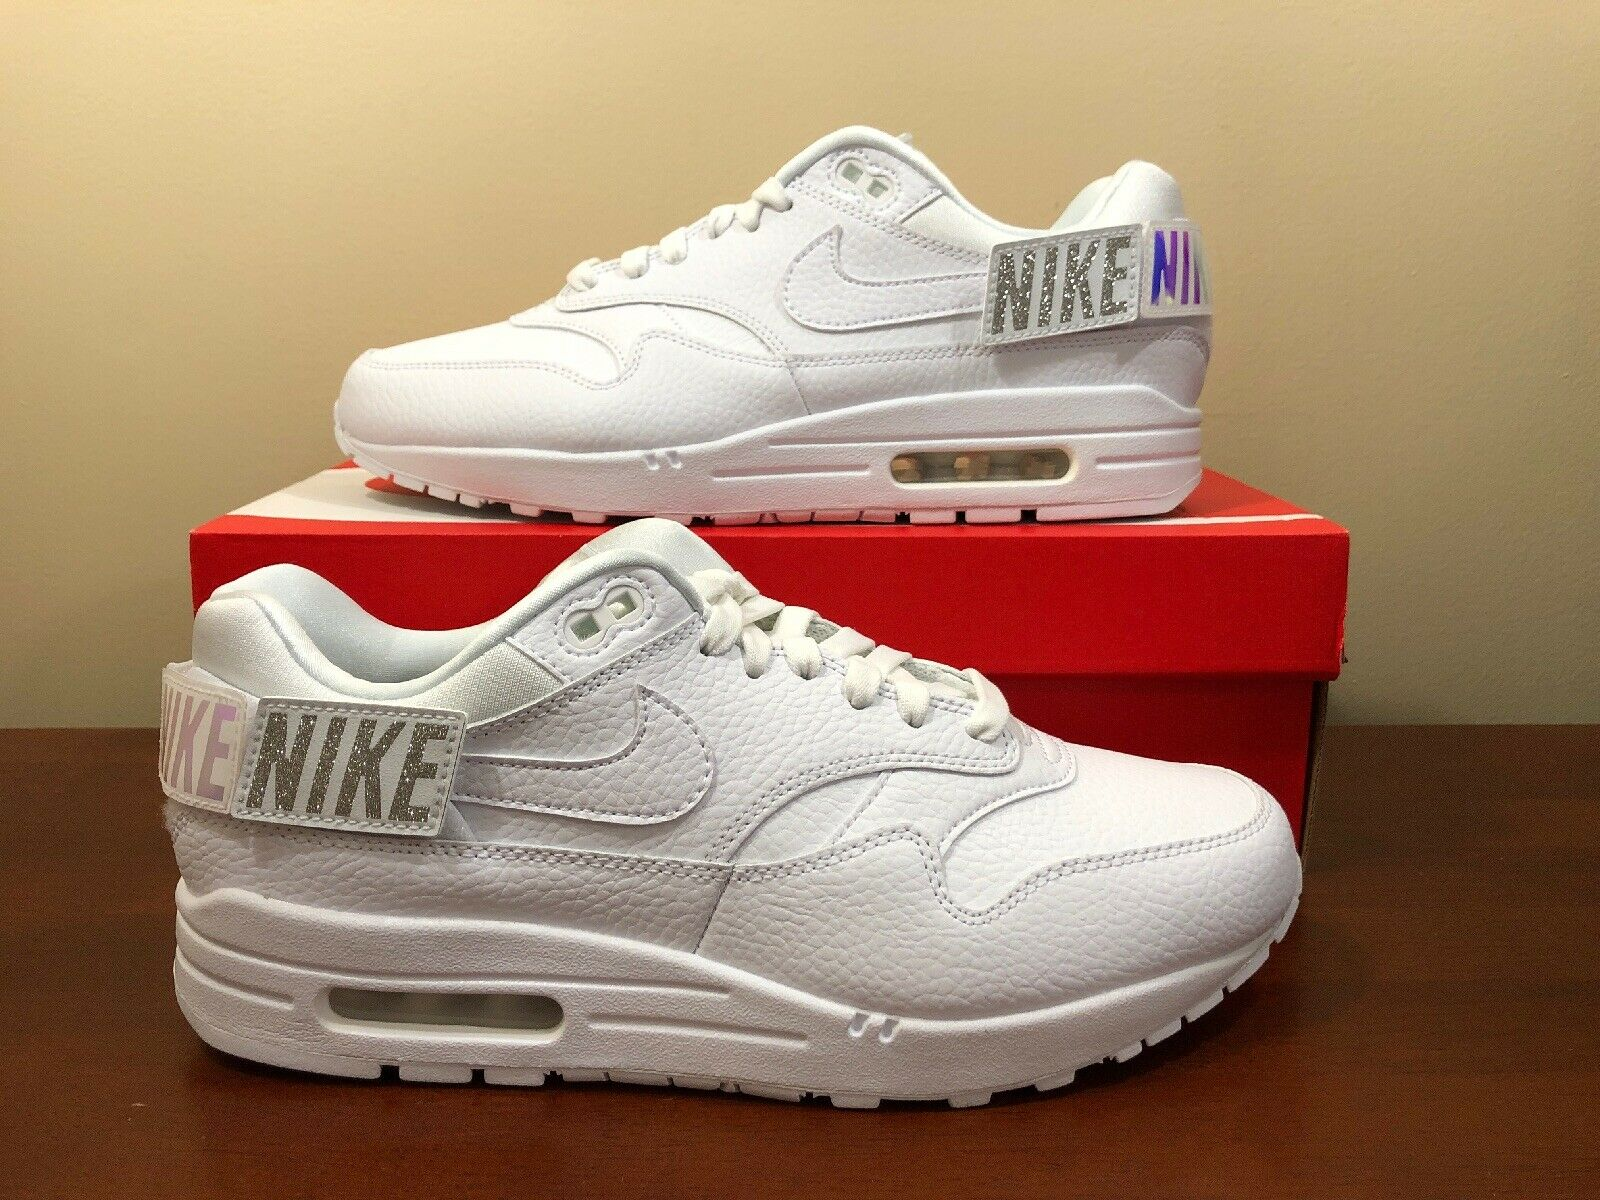 Nike Air Max 1-100  Patches  AQ7826-100 Women's size 10 US